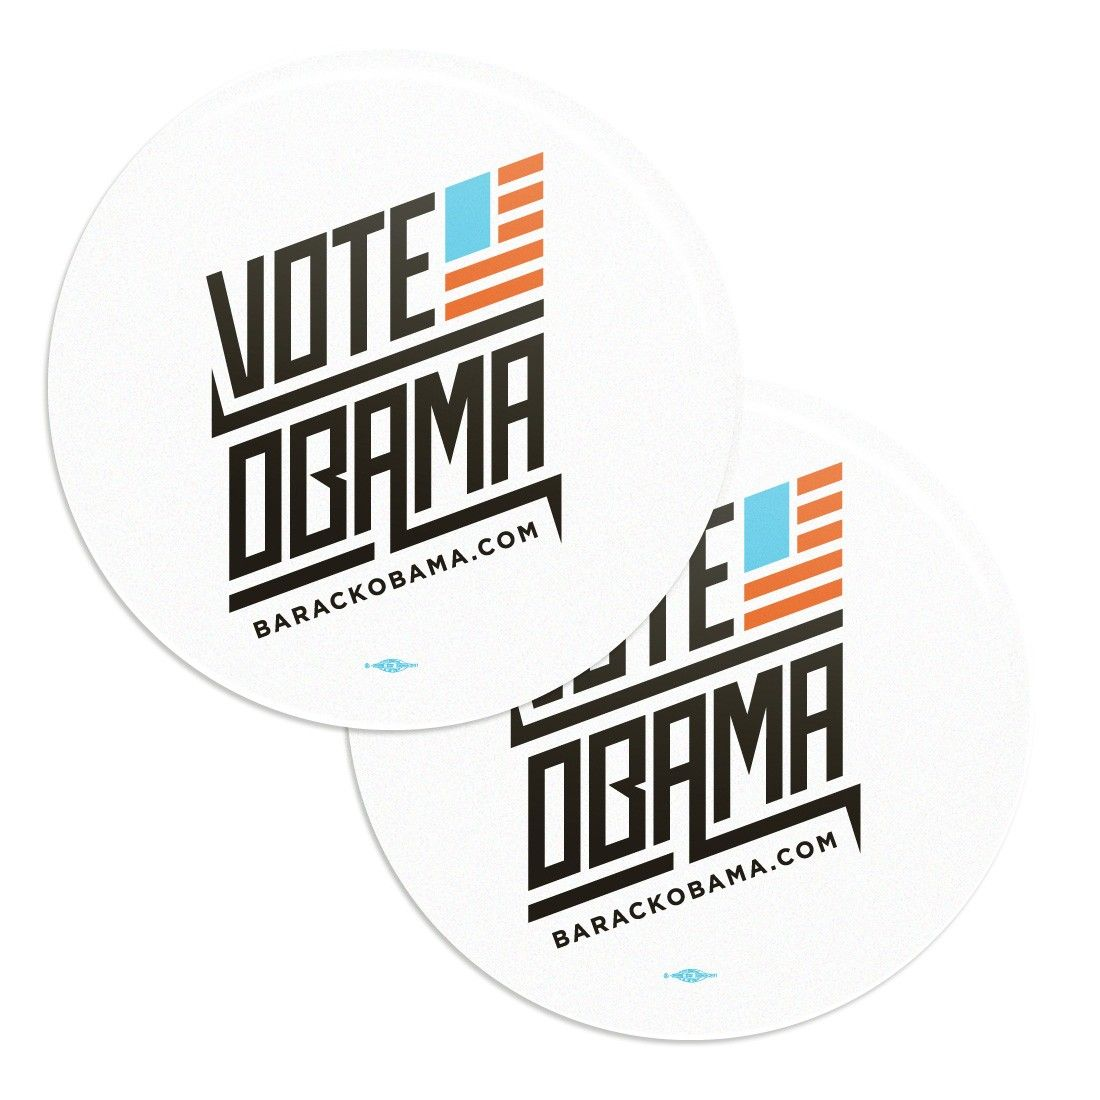 Looks like Obama has revealed the new brand for the election